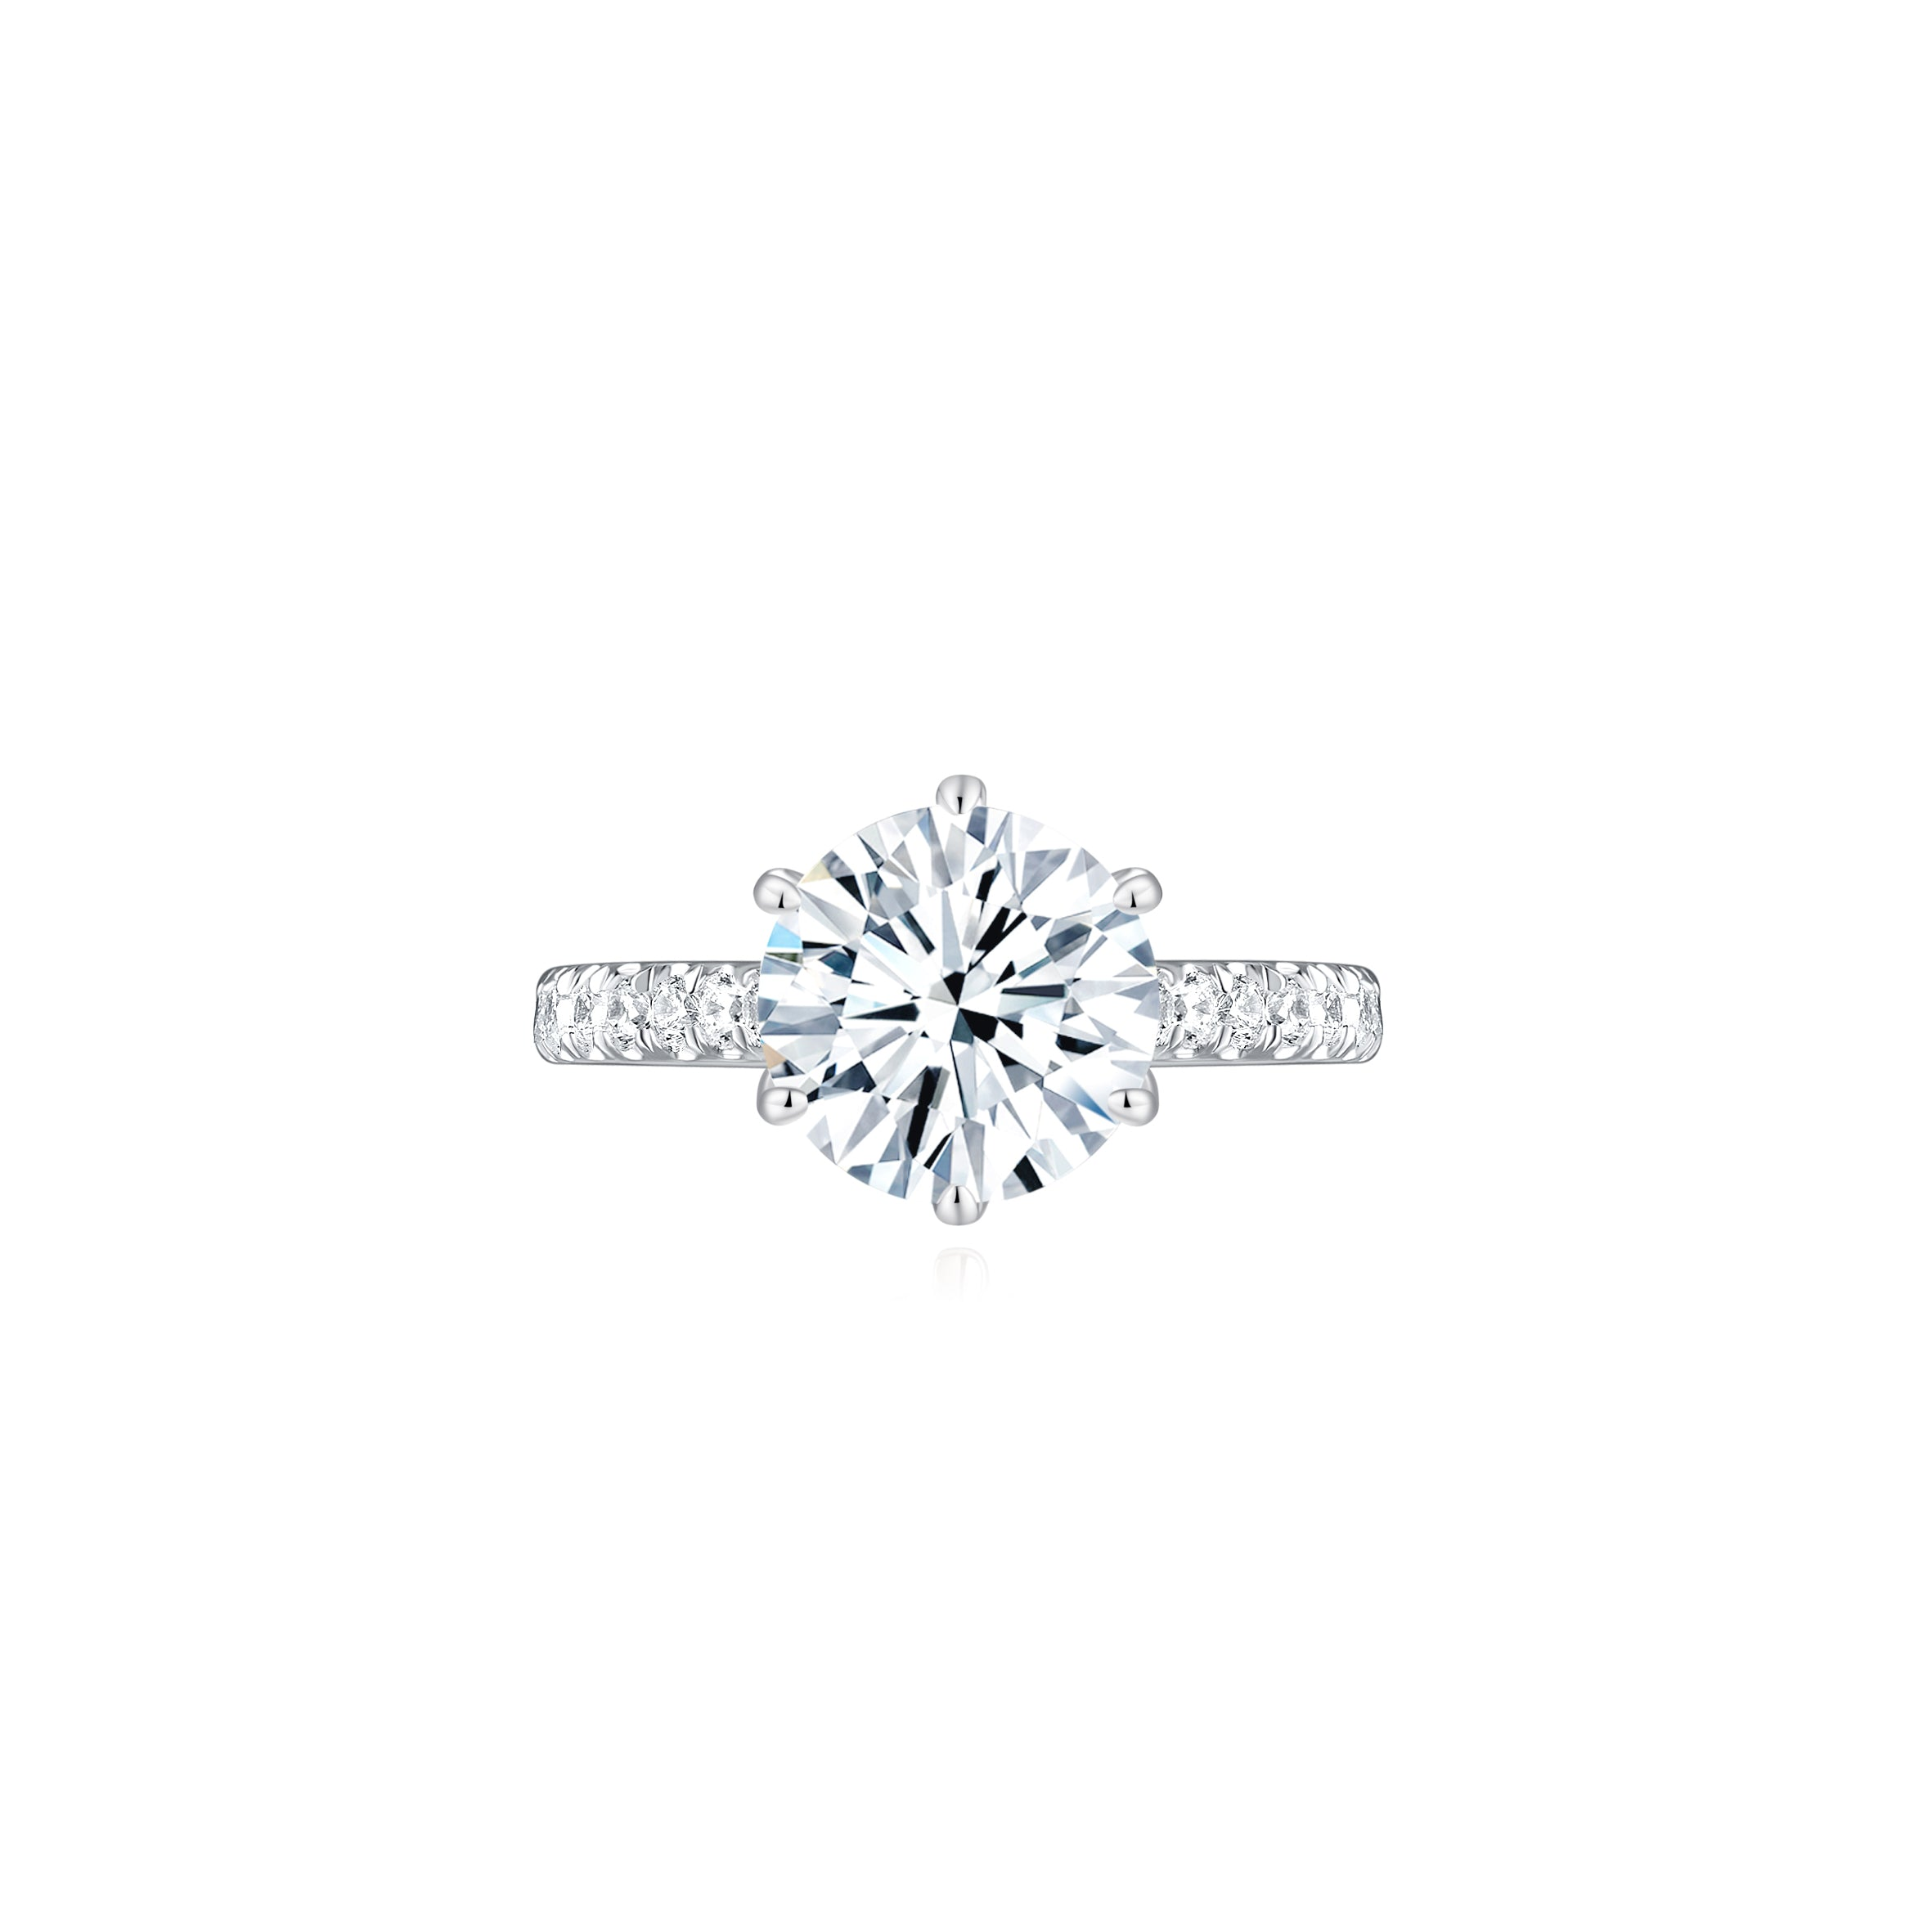 colour diamond cut diamonds grade education stock clarity carat